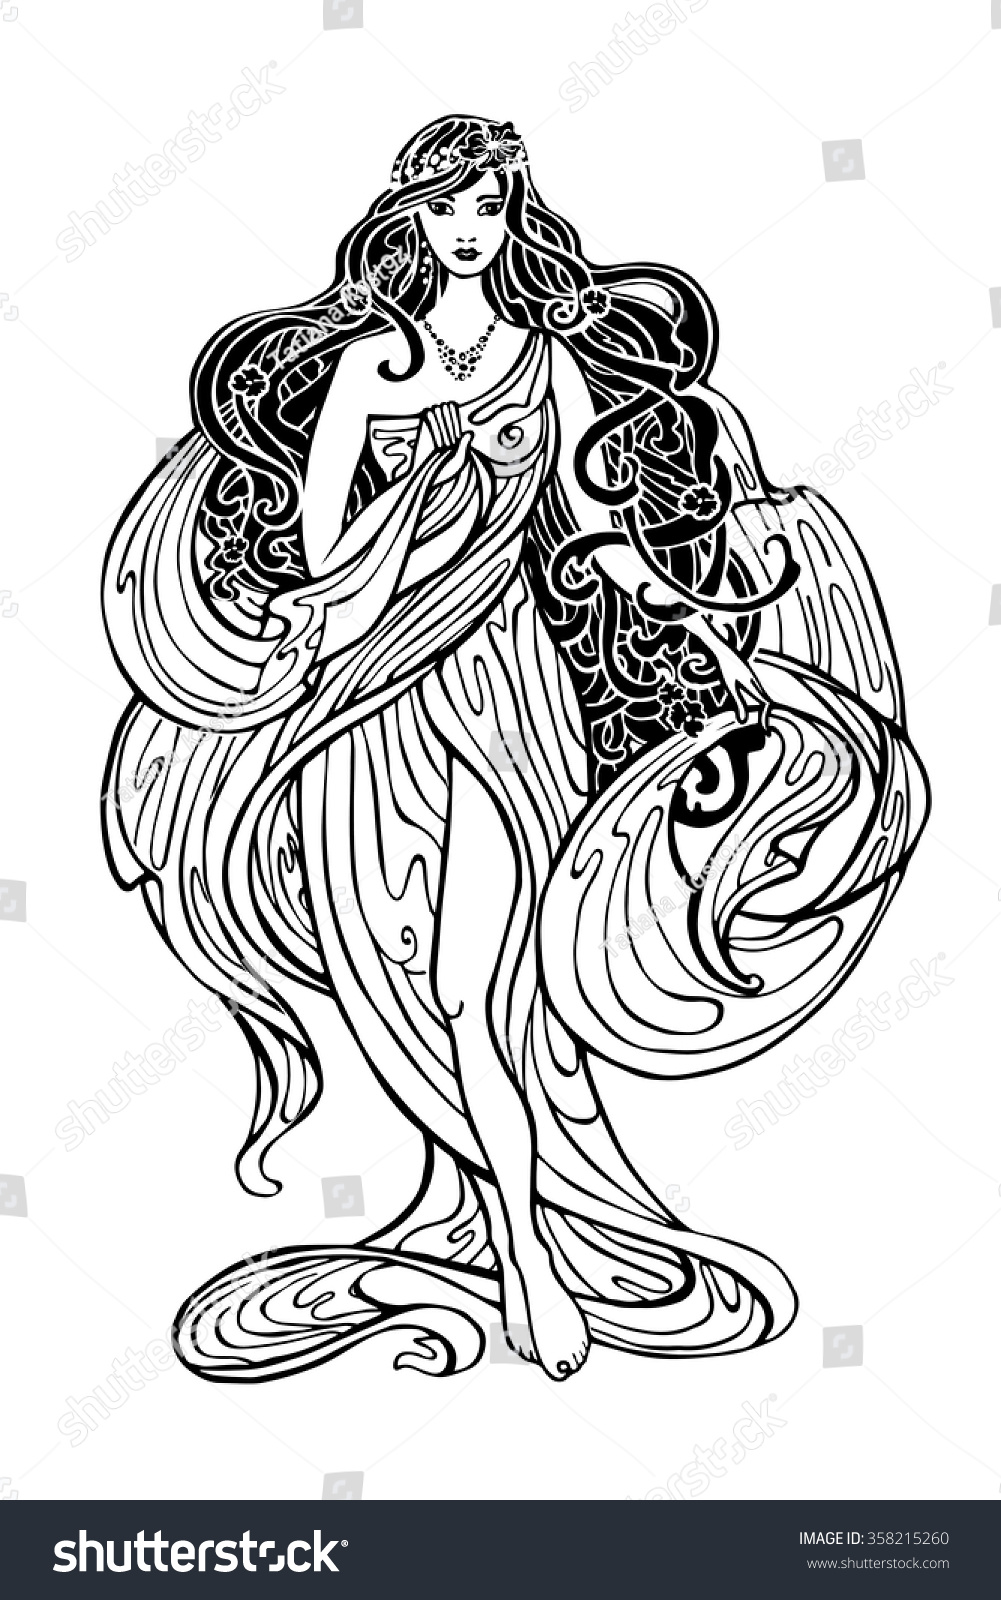 art nouveau styled woman with long flowing hair and